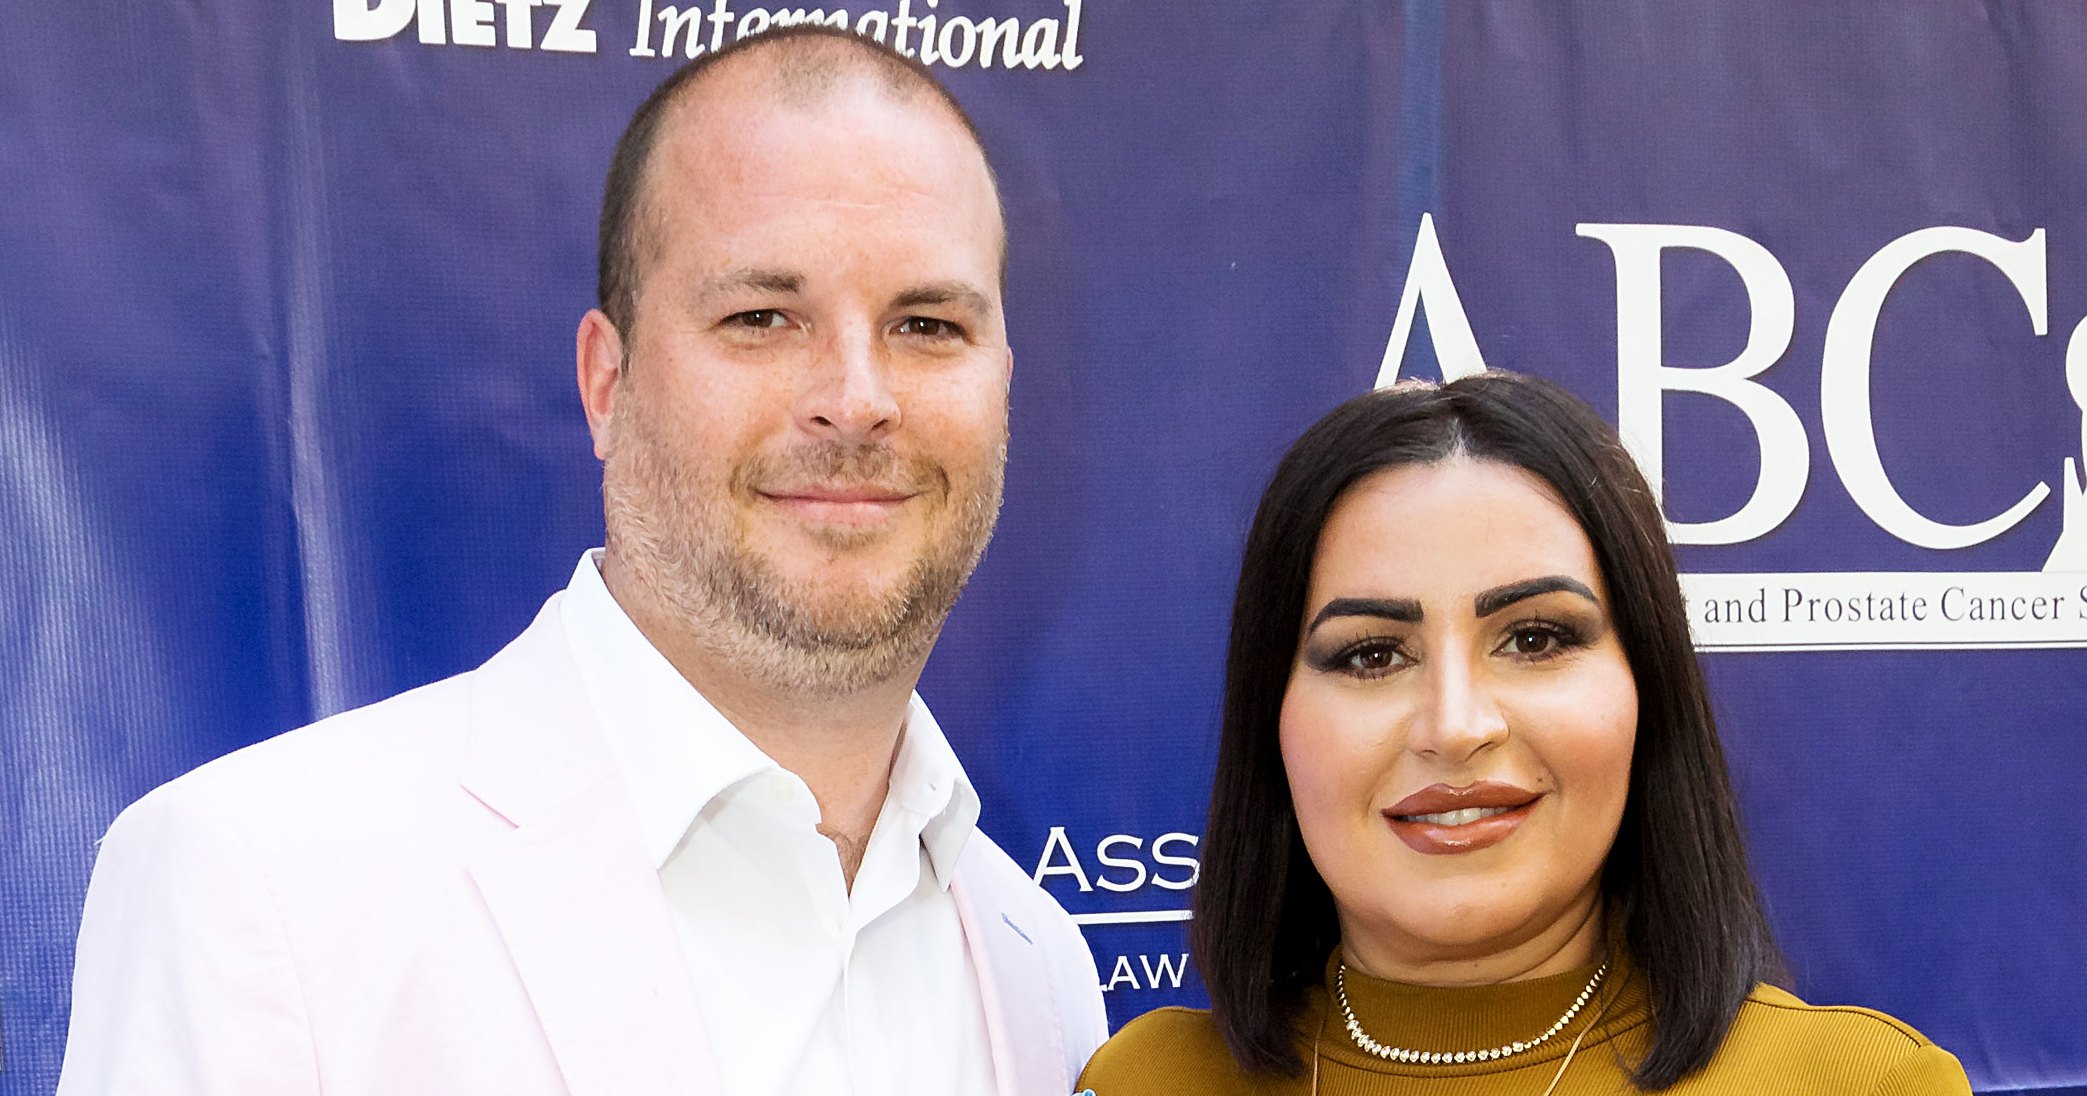 Mercedes 'MJ' Javid Welcomes First Child with Husband Tommy Feight